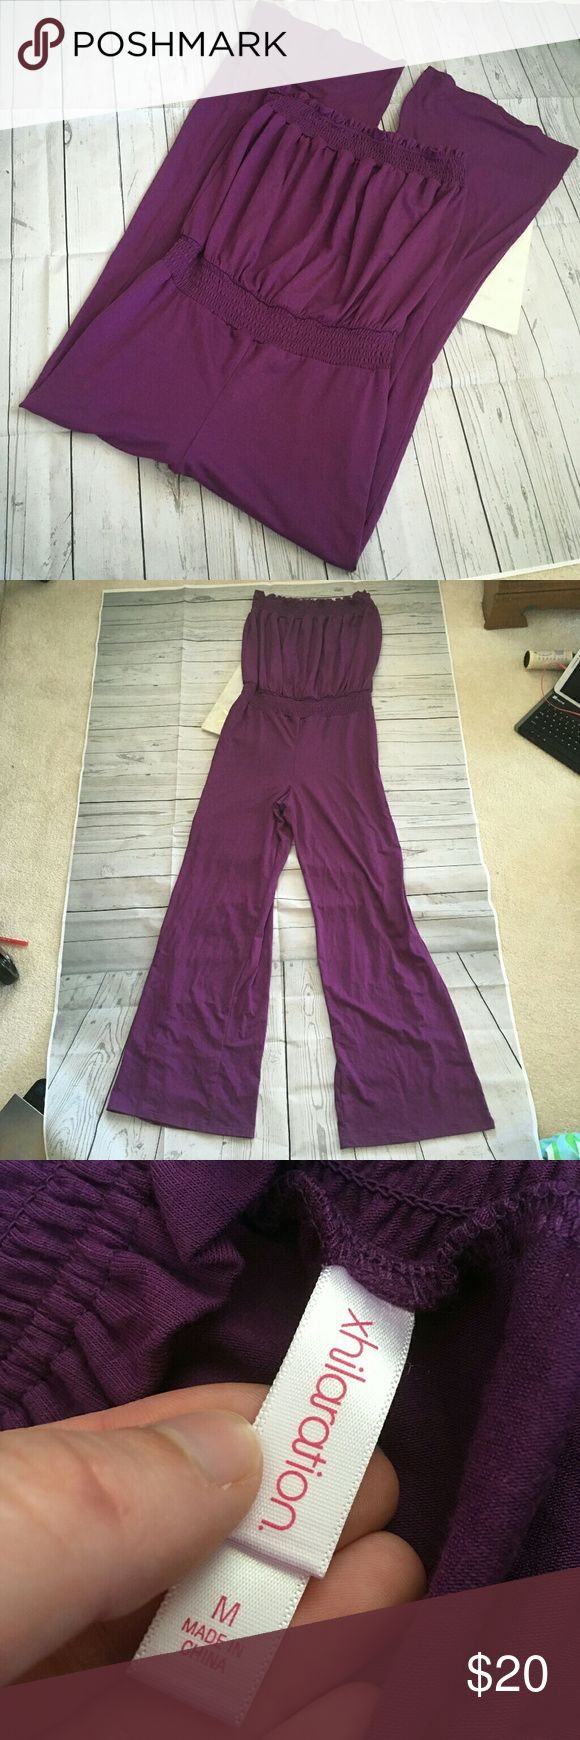 xhilaration womens medium purple jumpsuit summer gently used with no flaws purple jumpsuit  armpit to armpit = 12.5 inches inseam = 31 inches Xhilaration Pants Jumpsuits & Rompers